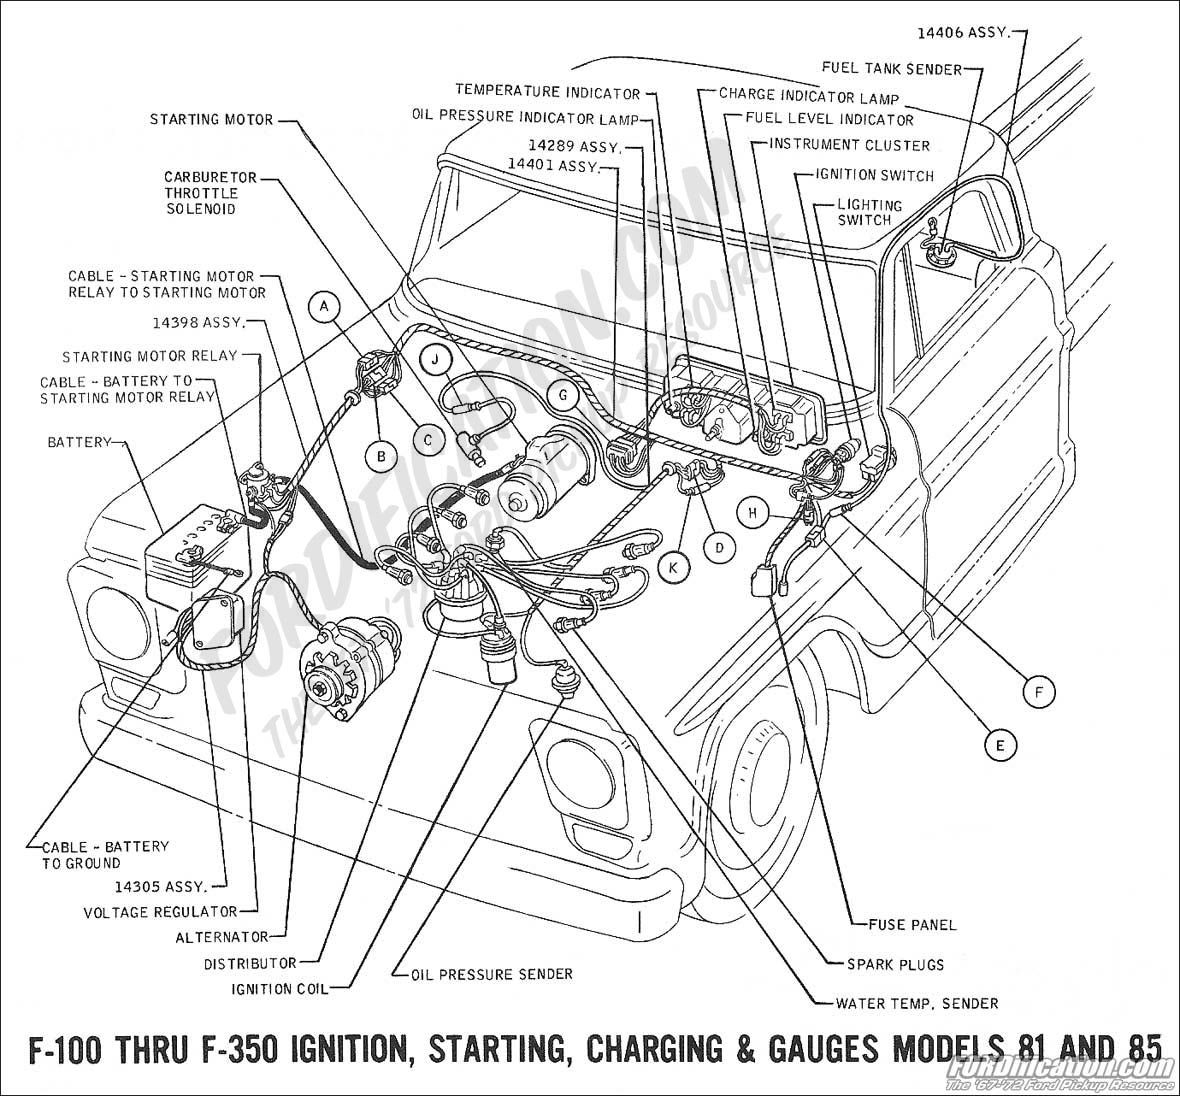 Pin by Stephanie Thrasher on ford truck | Ford truck, Old ford trucks,  Lifted ford trucks | Ford F 500 Wiring Diagram 1974 Ignition Coil |  | Pinterest